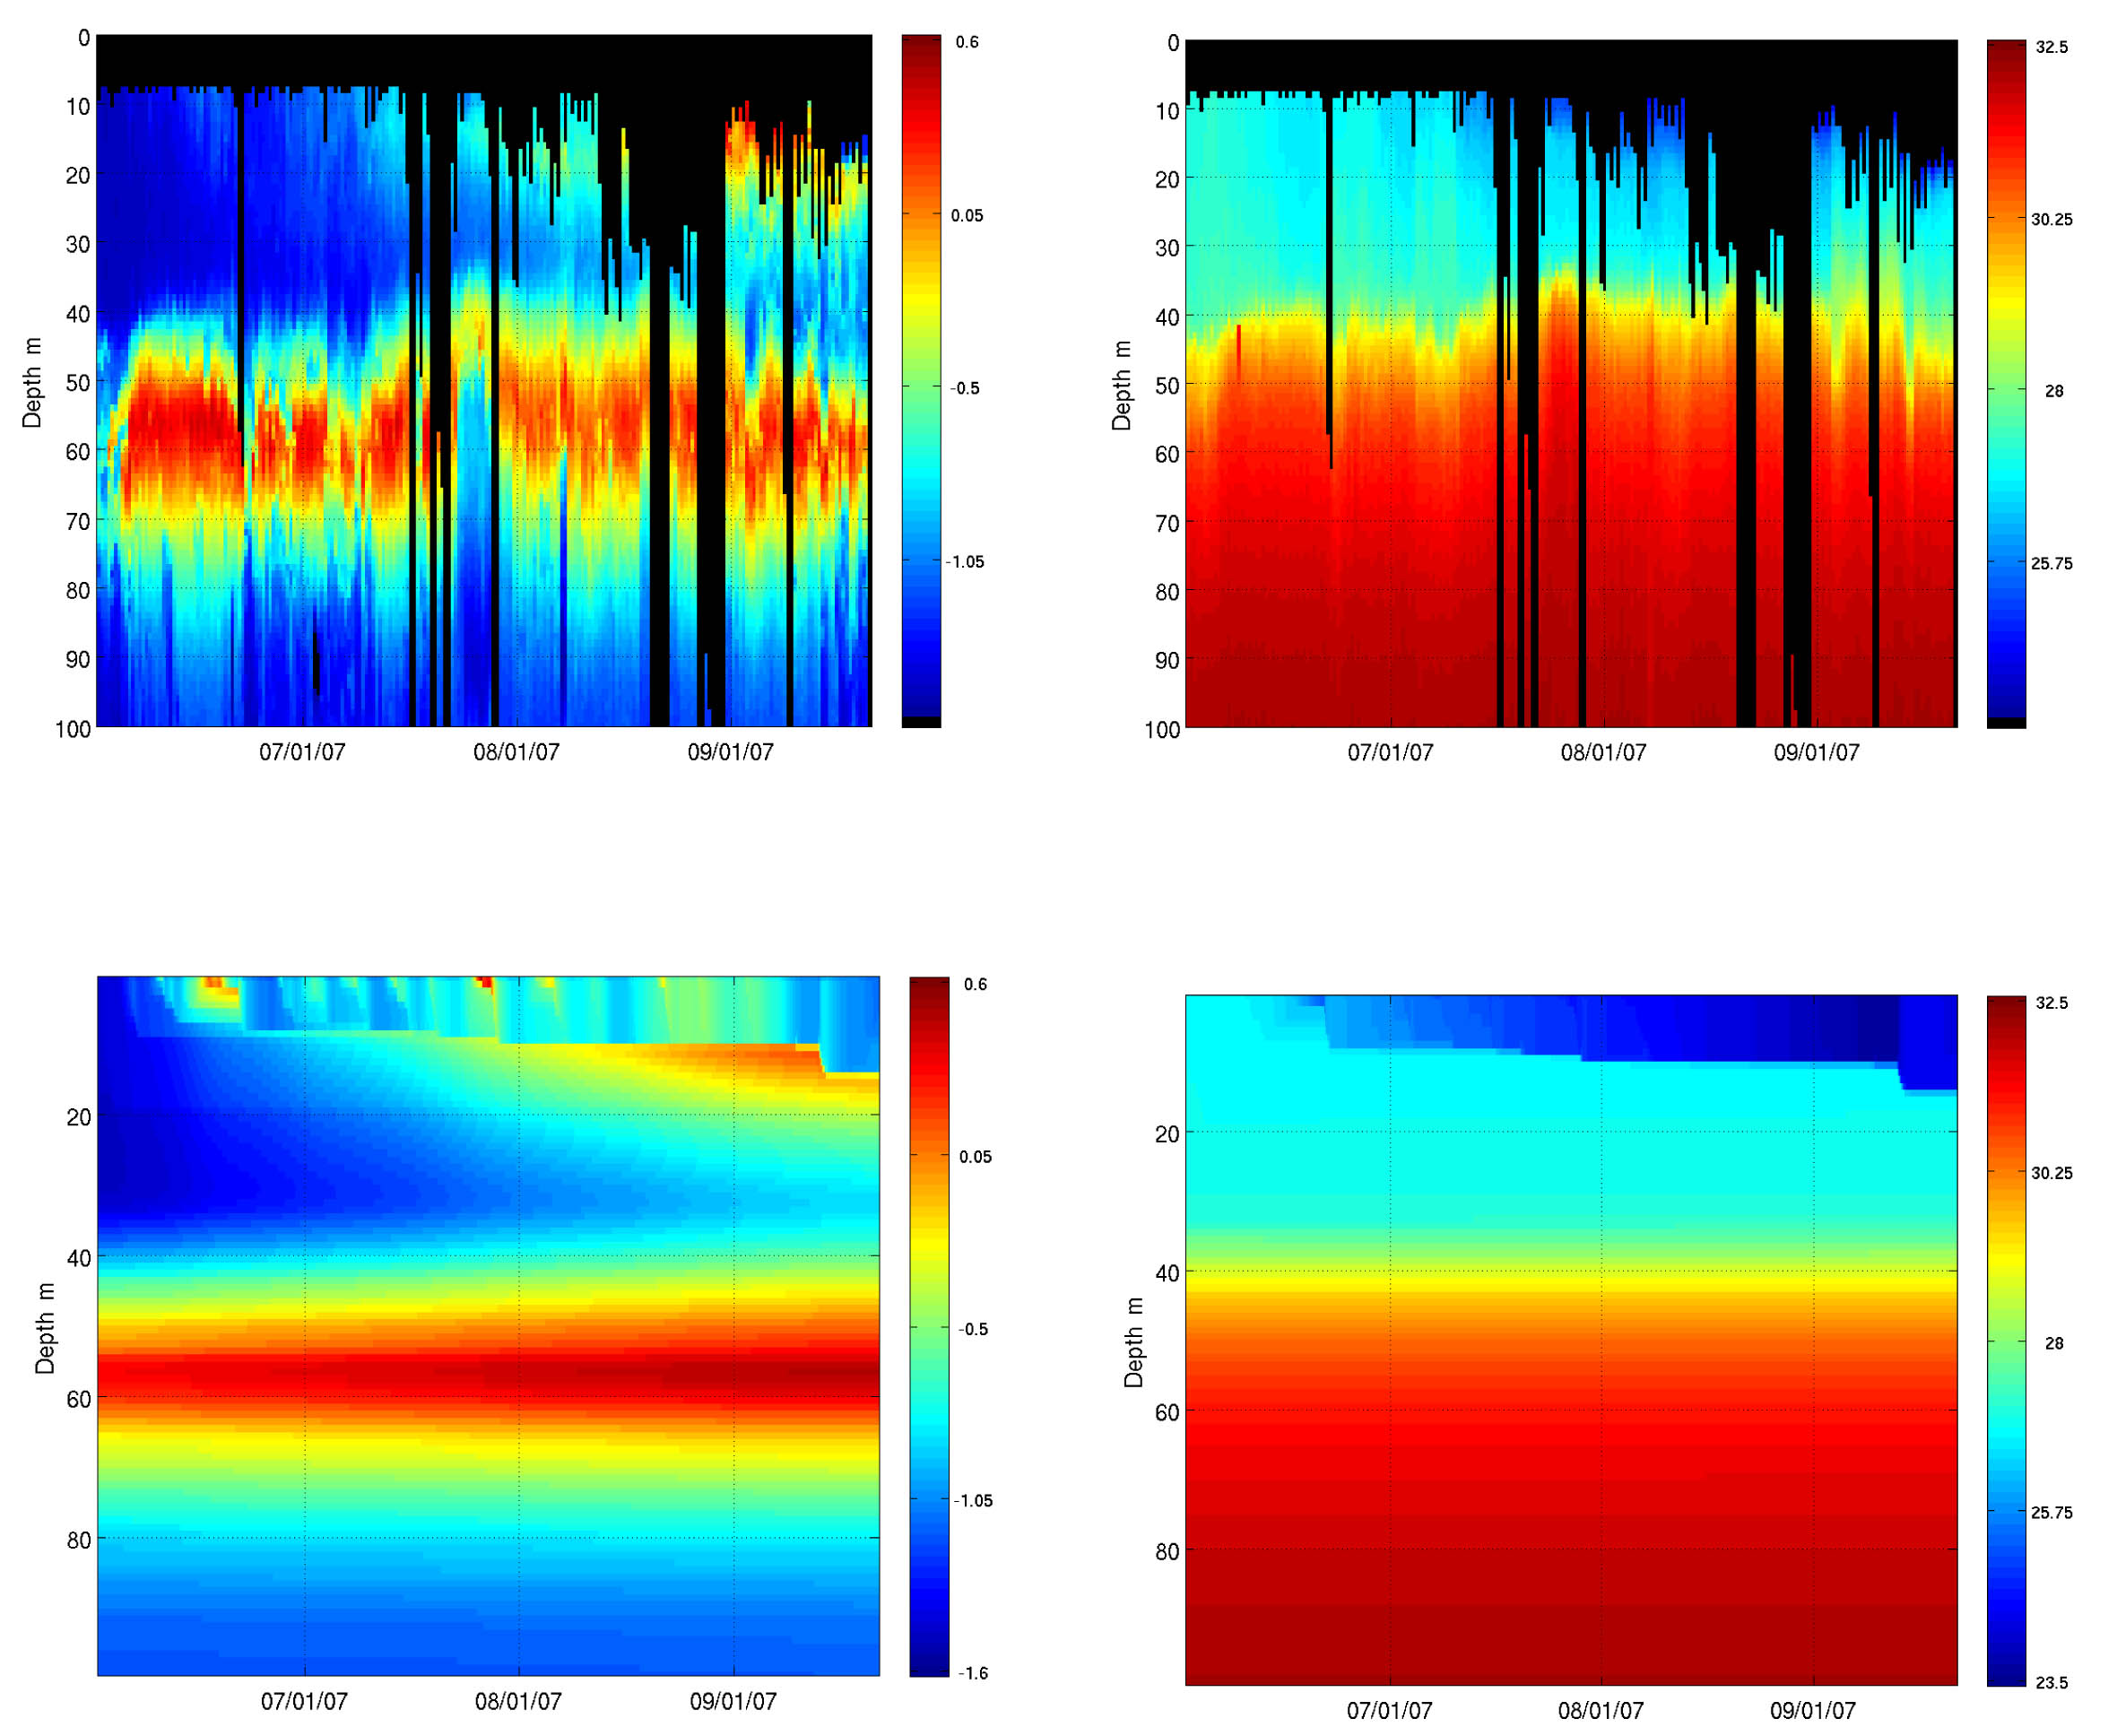 Depth-time contour plots of the observed and modeled upper ocean temperature and salinity for the Summer 2007